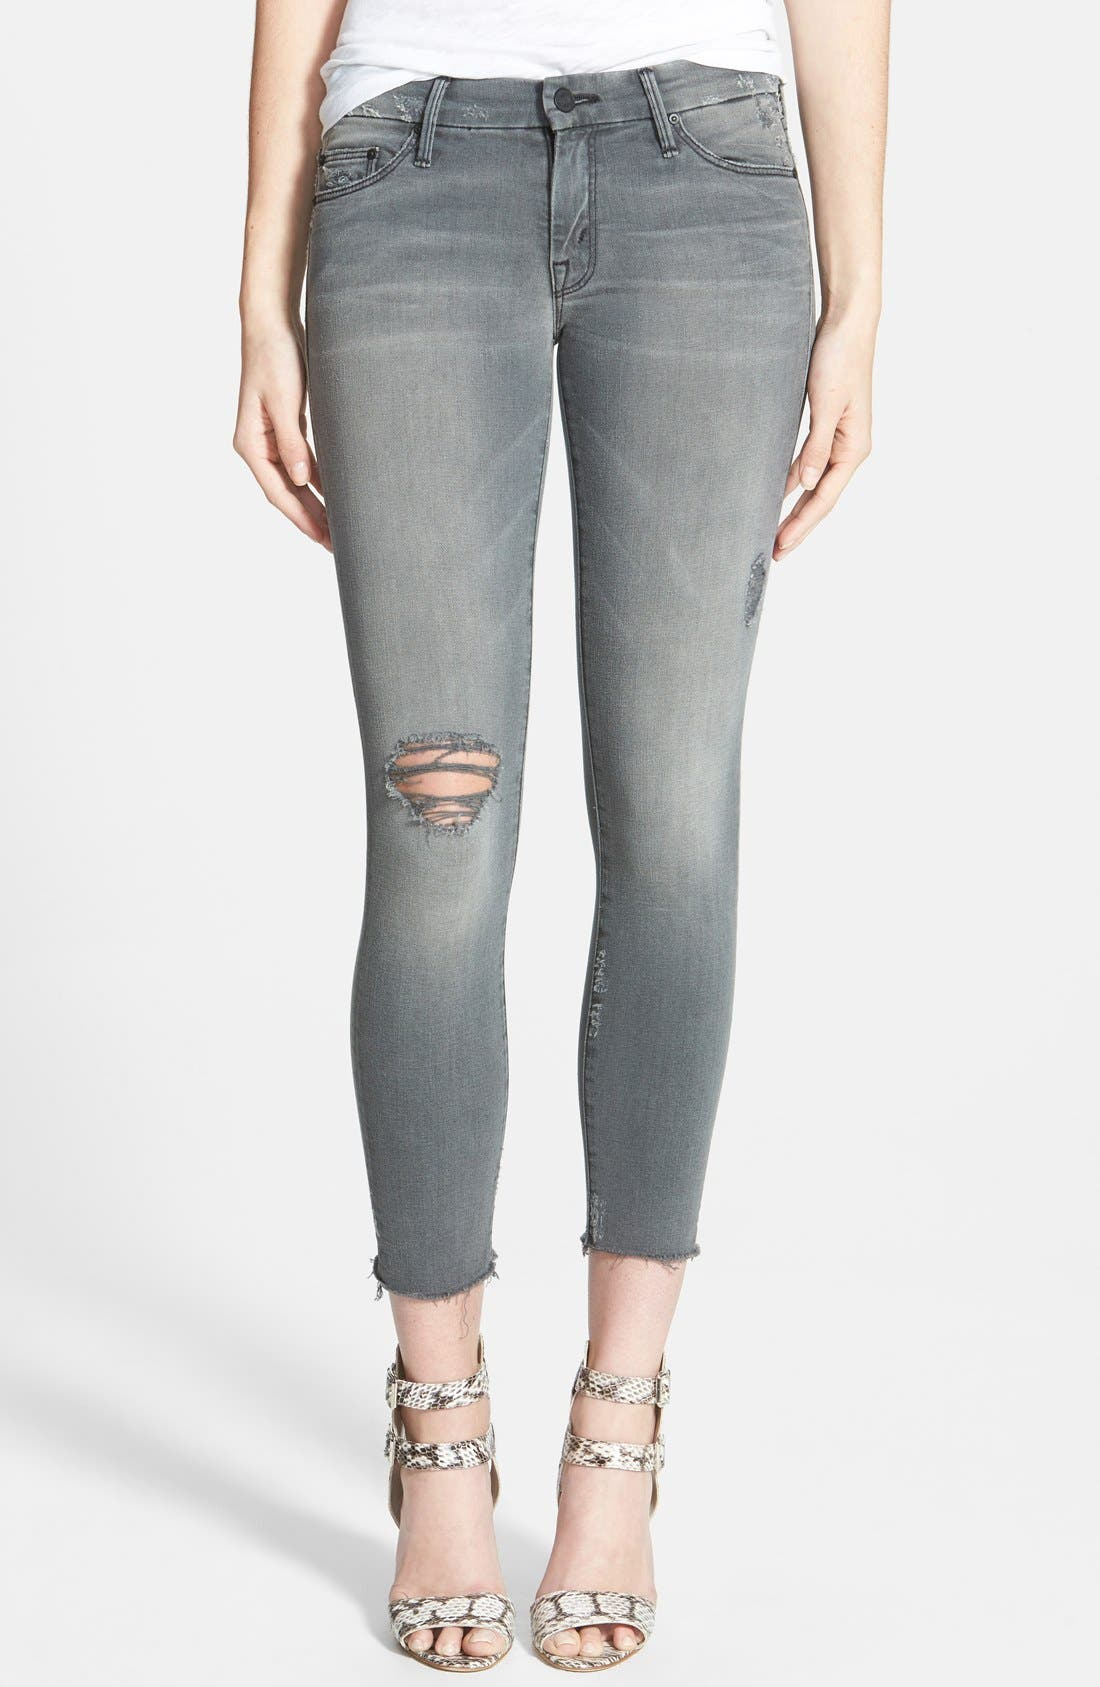 MOTHER Frayed Ankle Jeans (Last Chance Saloon)